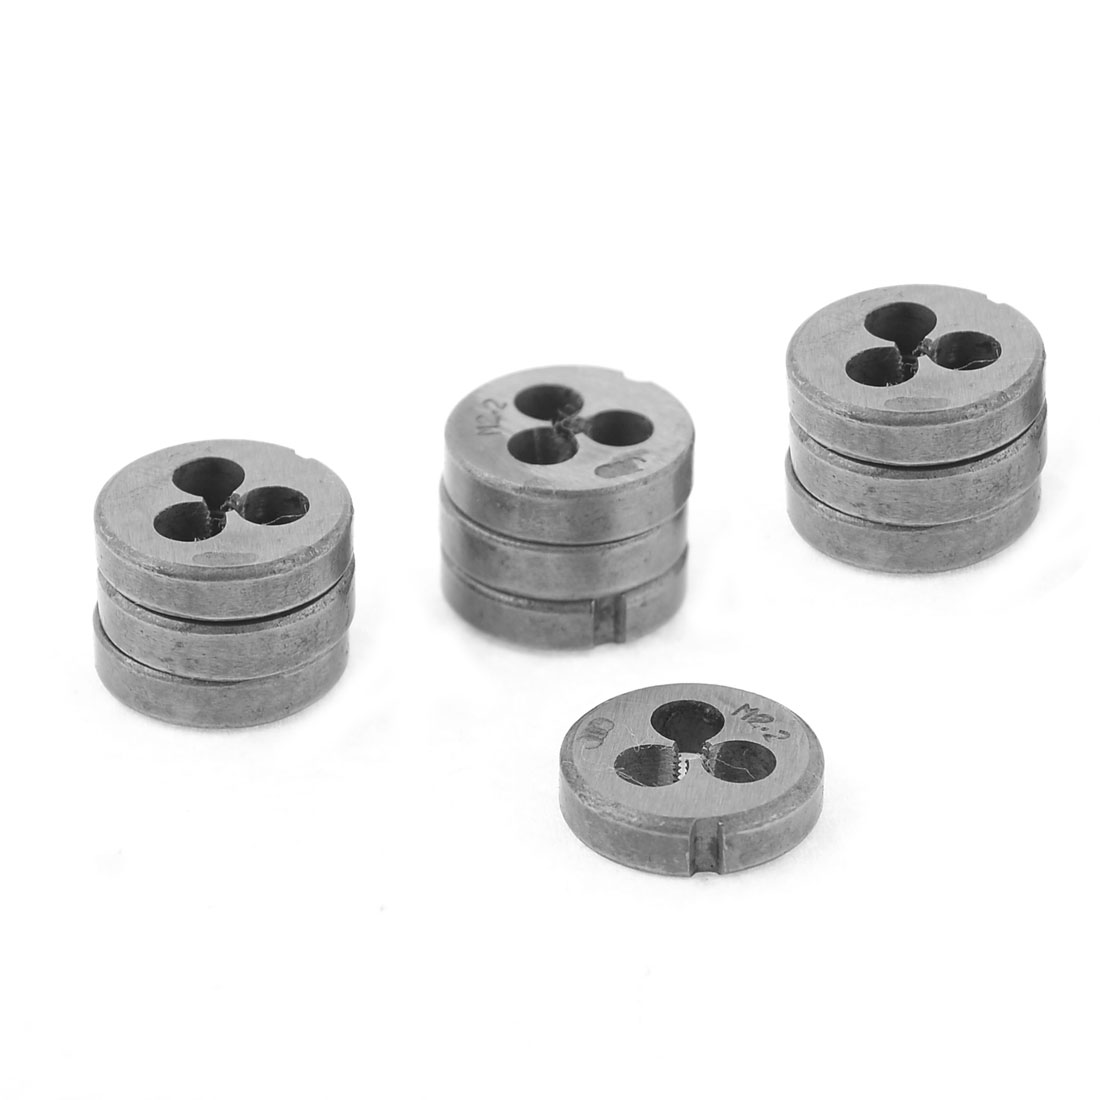 10 Pcs 16mm Outside Diameter 1.9mm Pitch M2.2 Coarse Round Thread Die